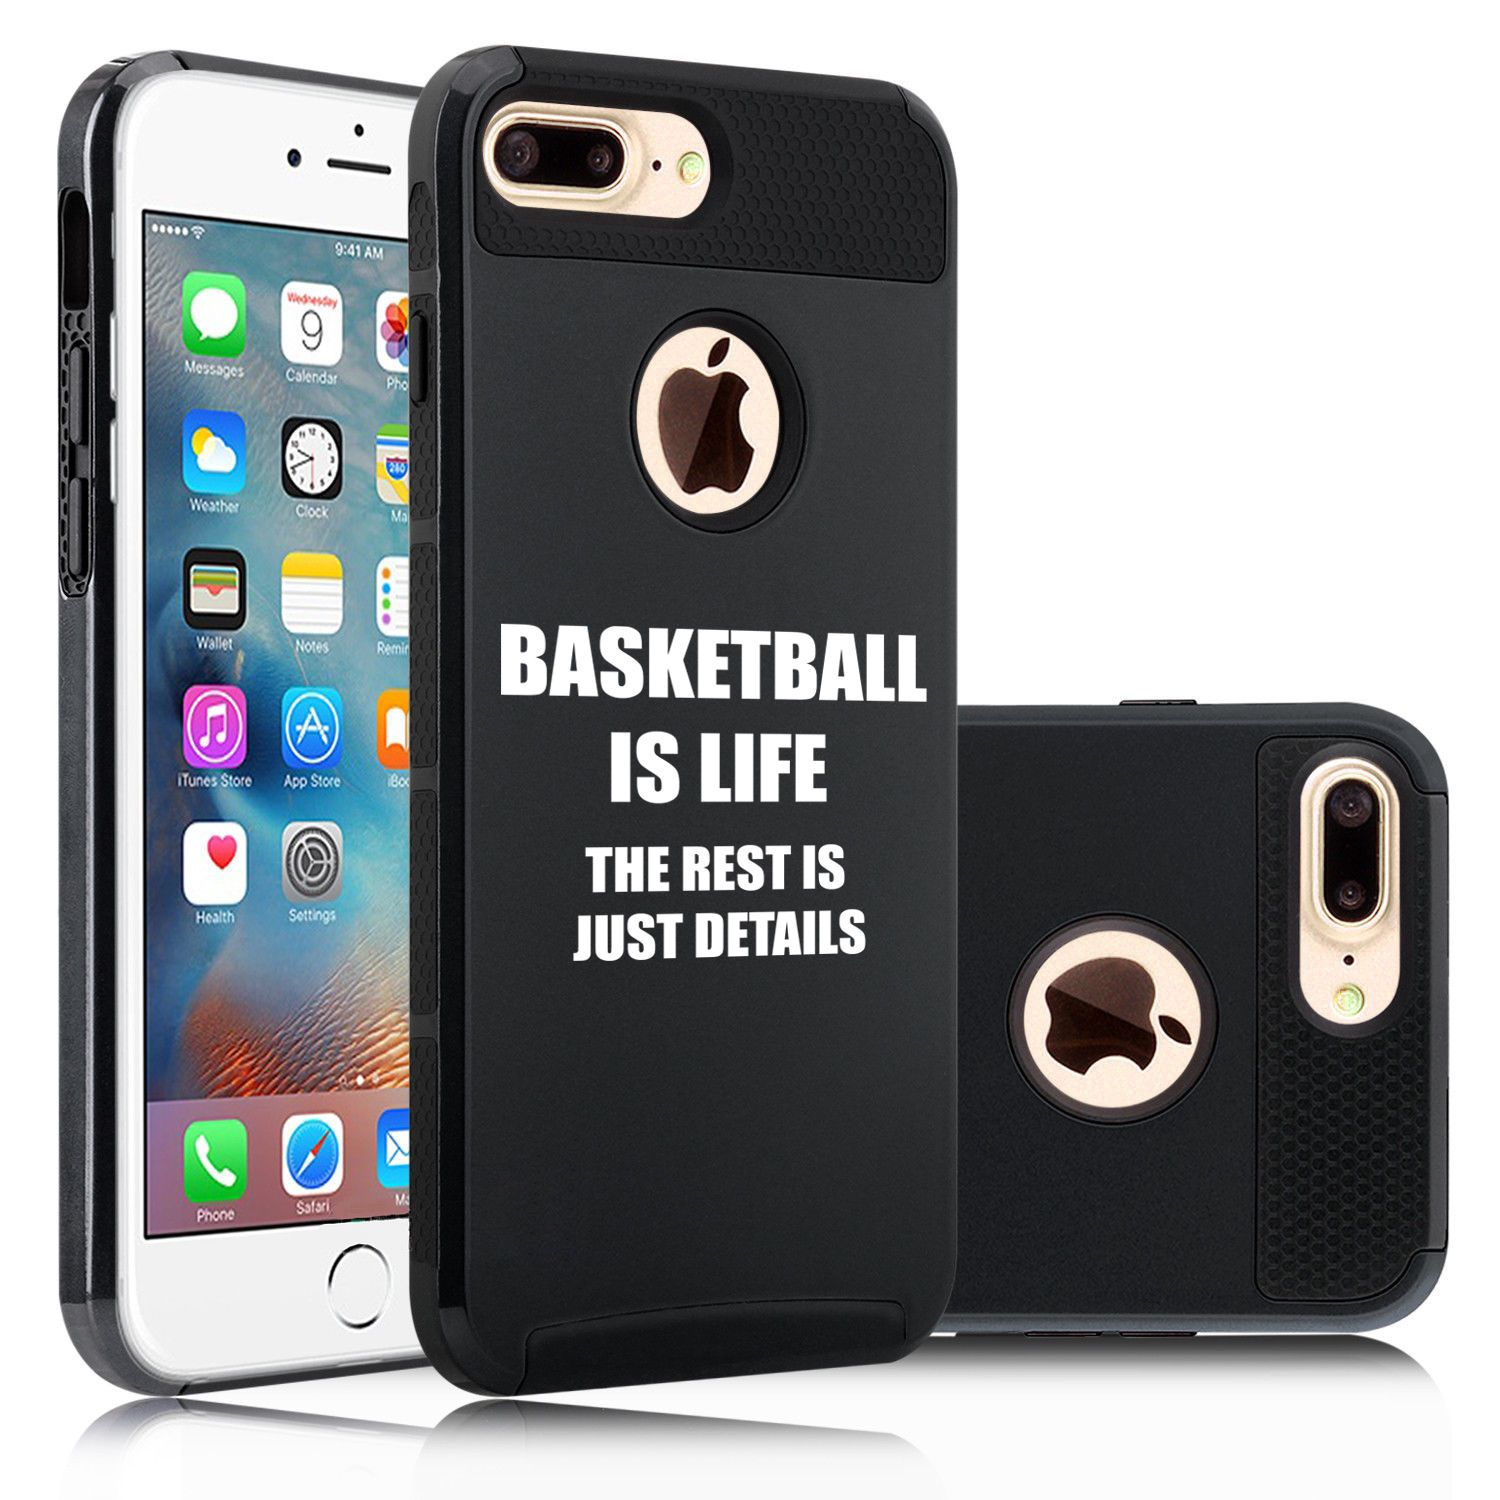 Details About For Iphone X Xs Max 7 8 Plus Dual Shockproof Hard Case Cover Basketball Is Life Iphone Rose Gold Iphone Case Iphone Cases